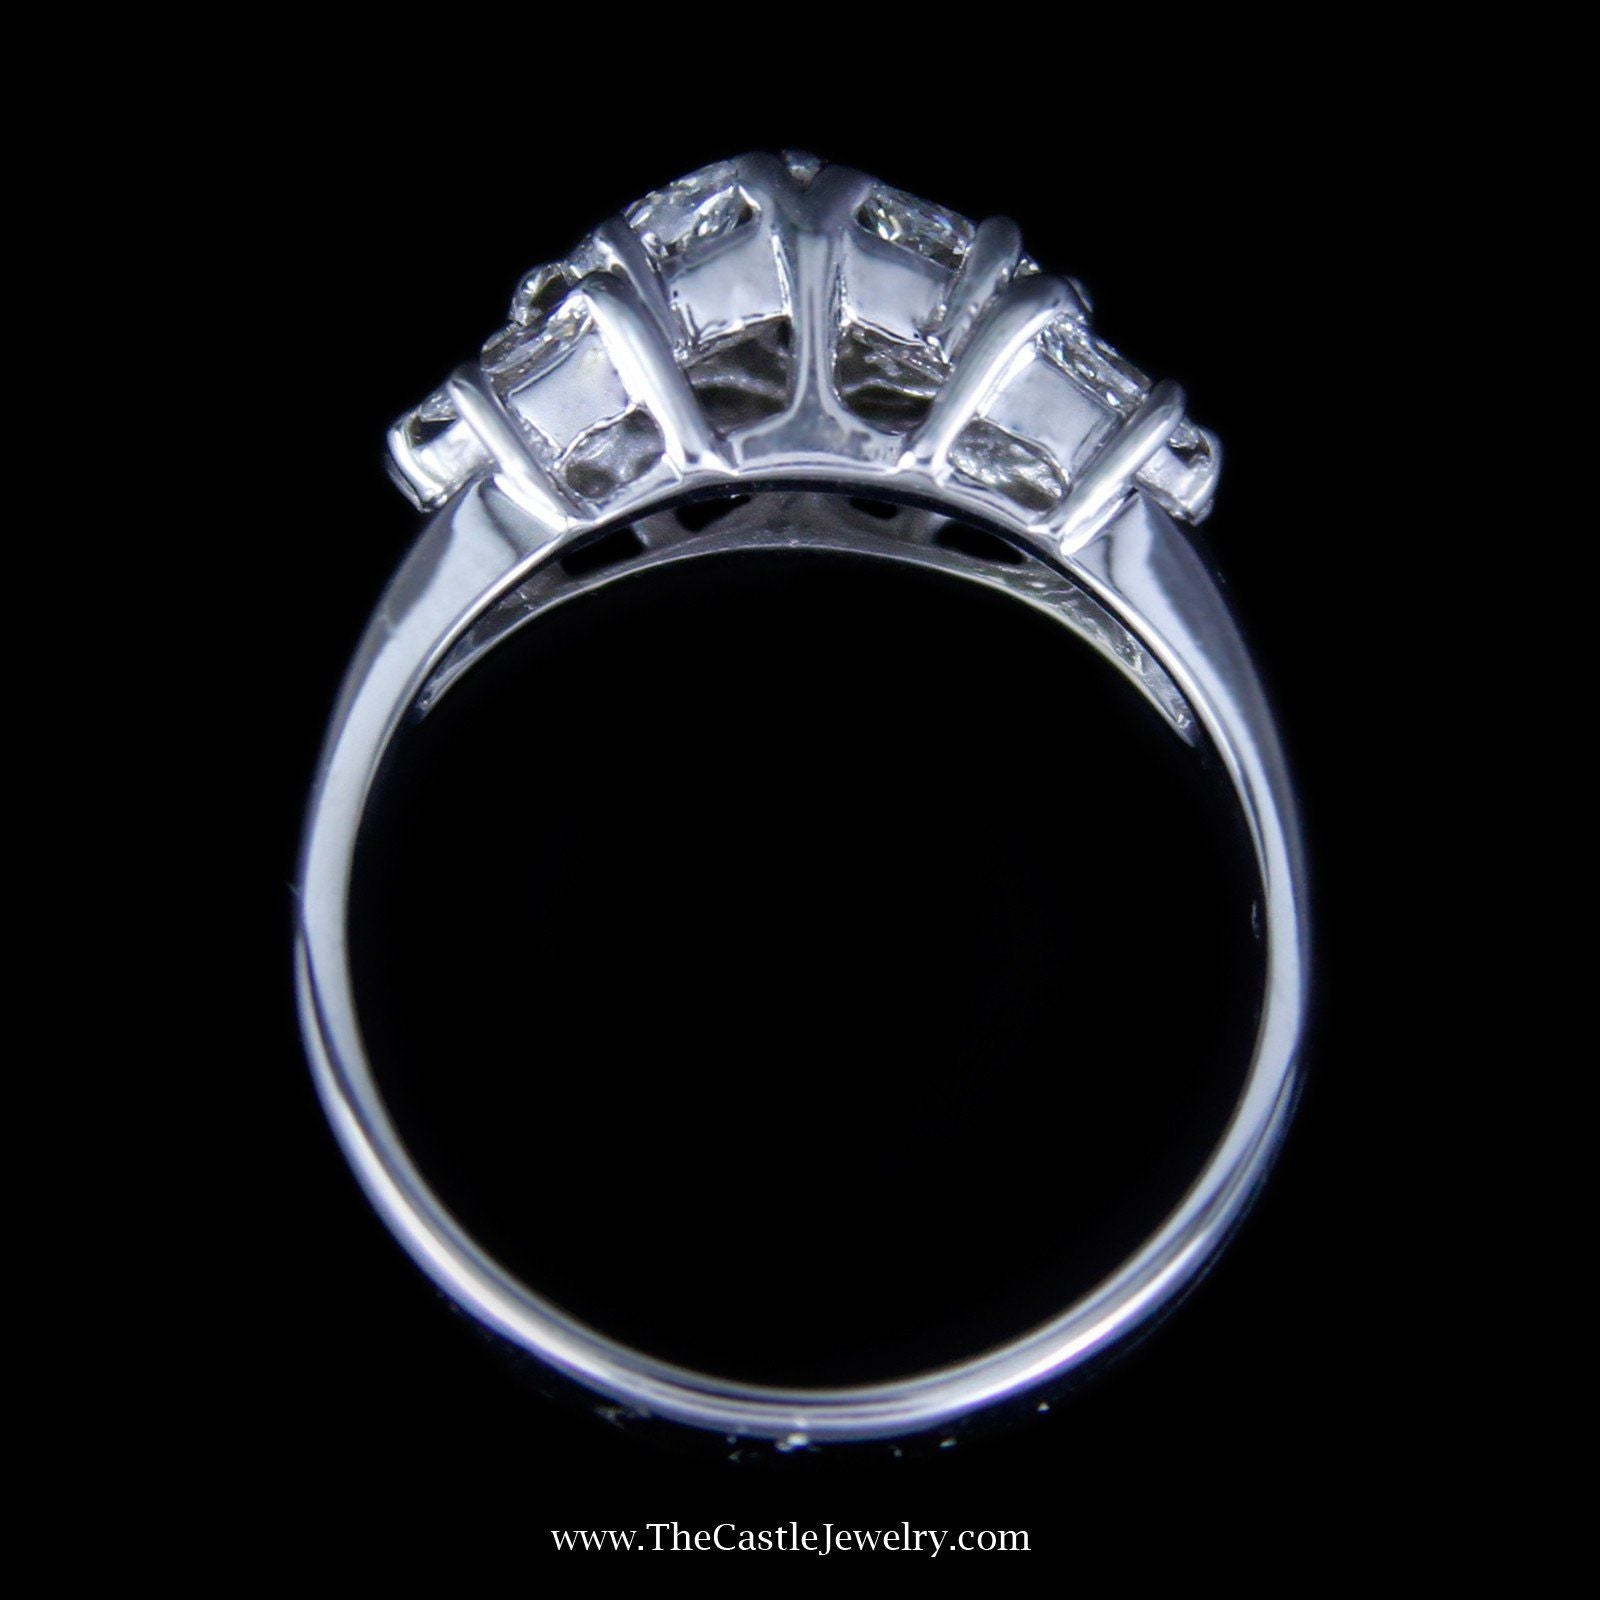 Gorgeous Marquise Diamond Cluster Ring with Polished Sides in 18K White Gold-1